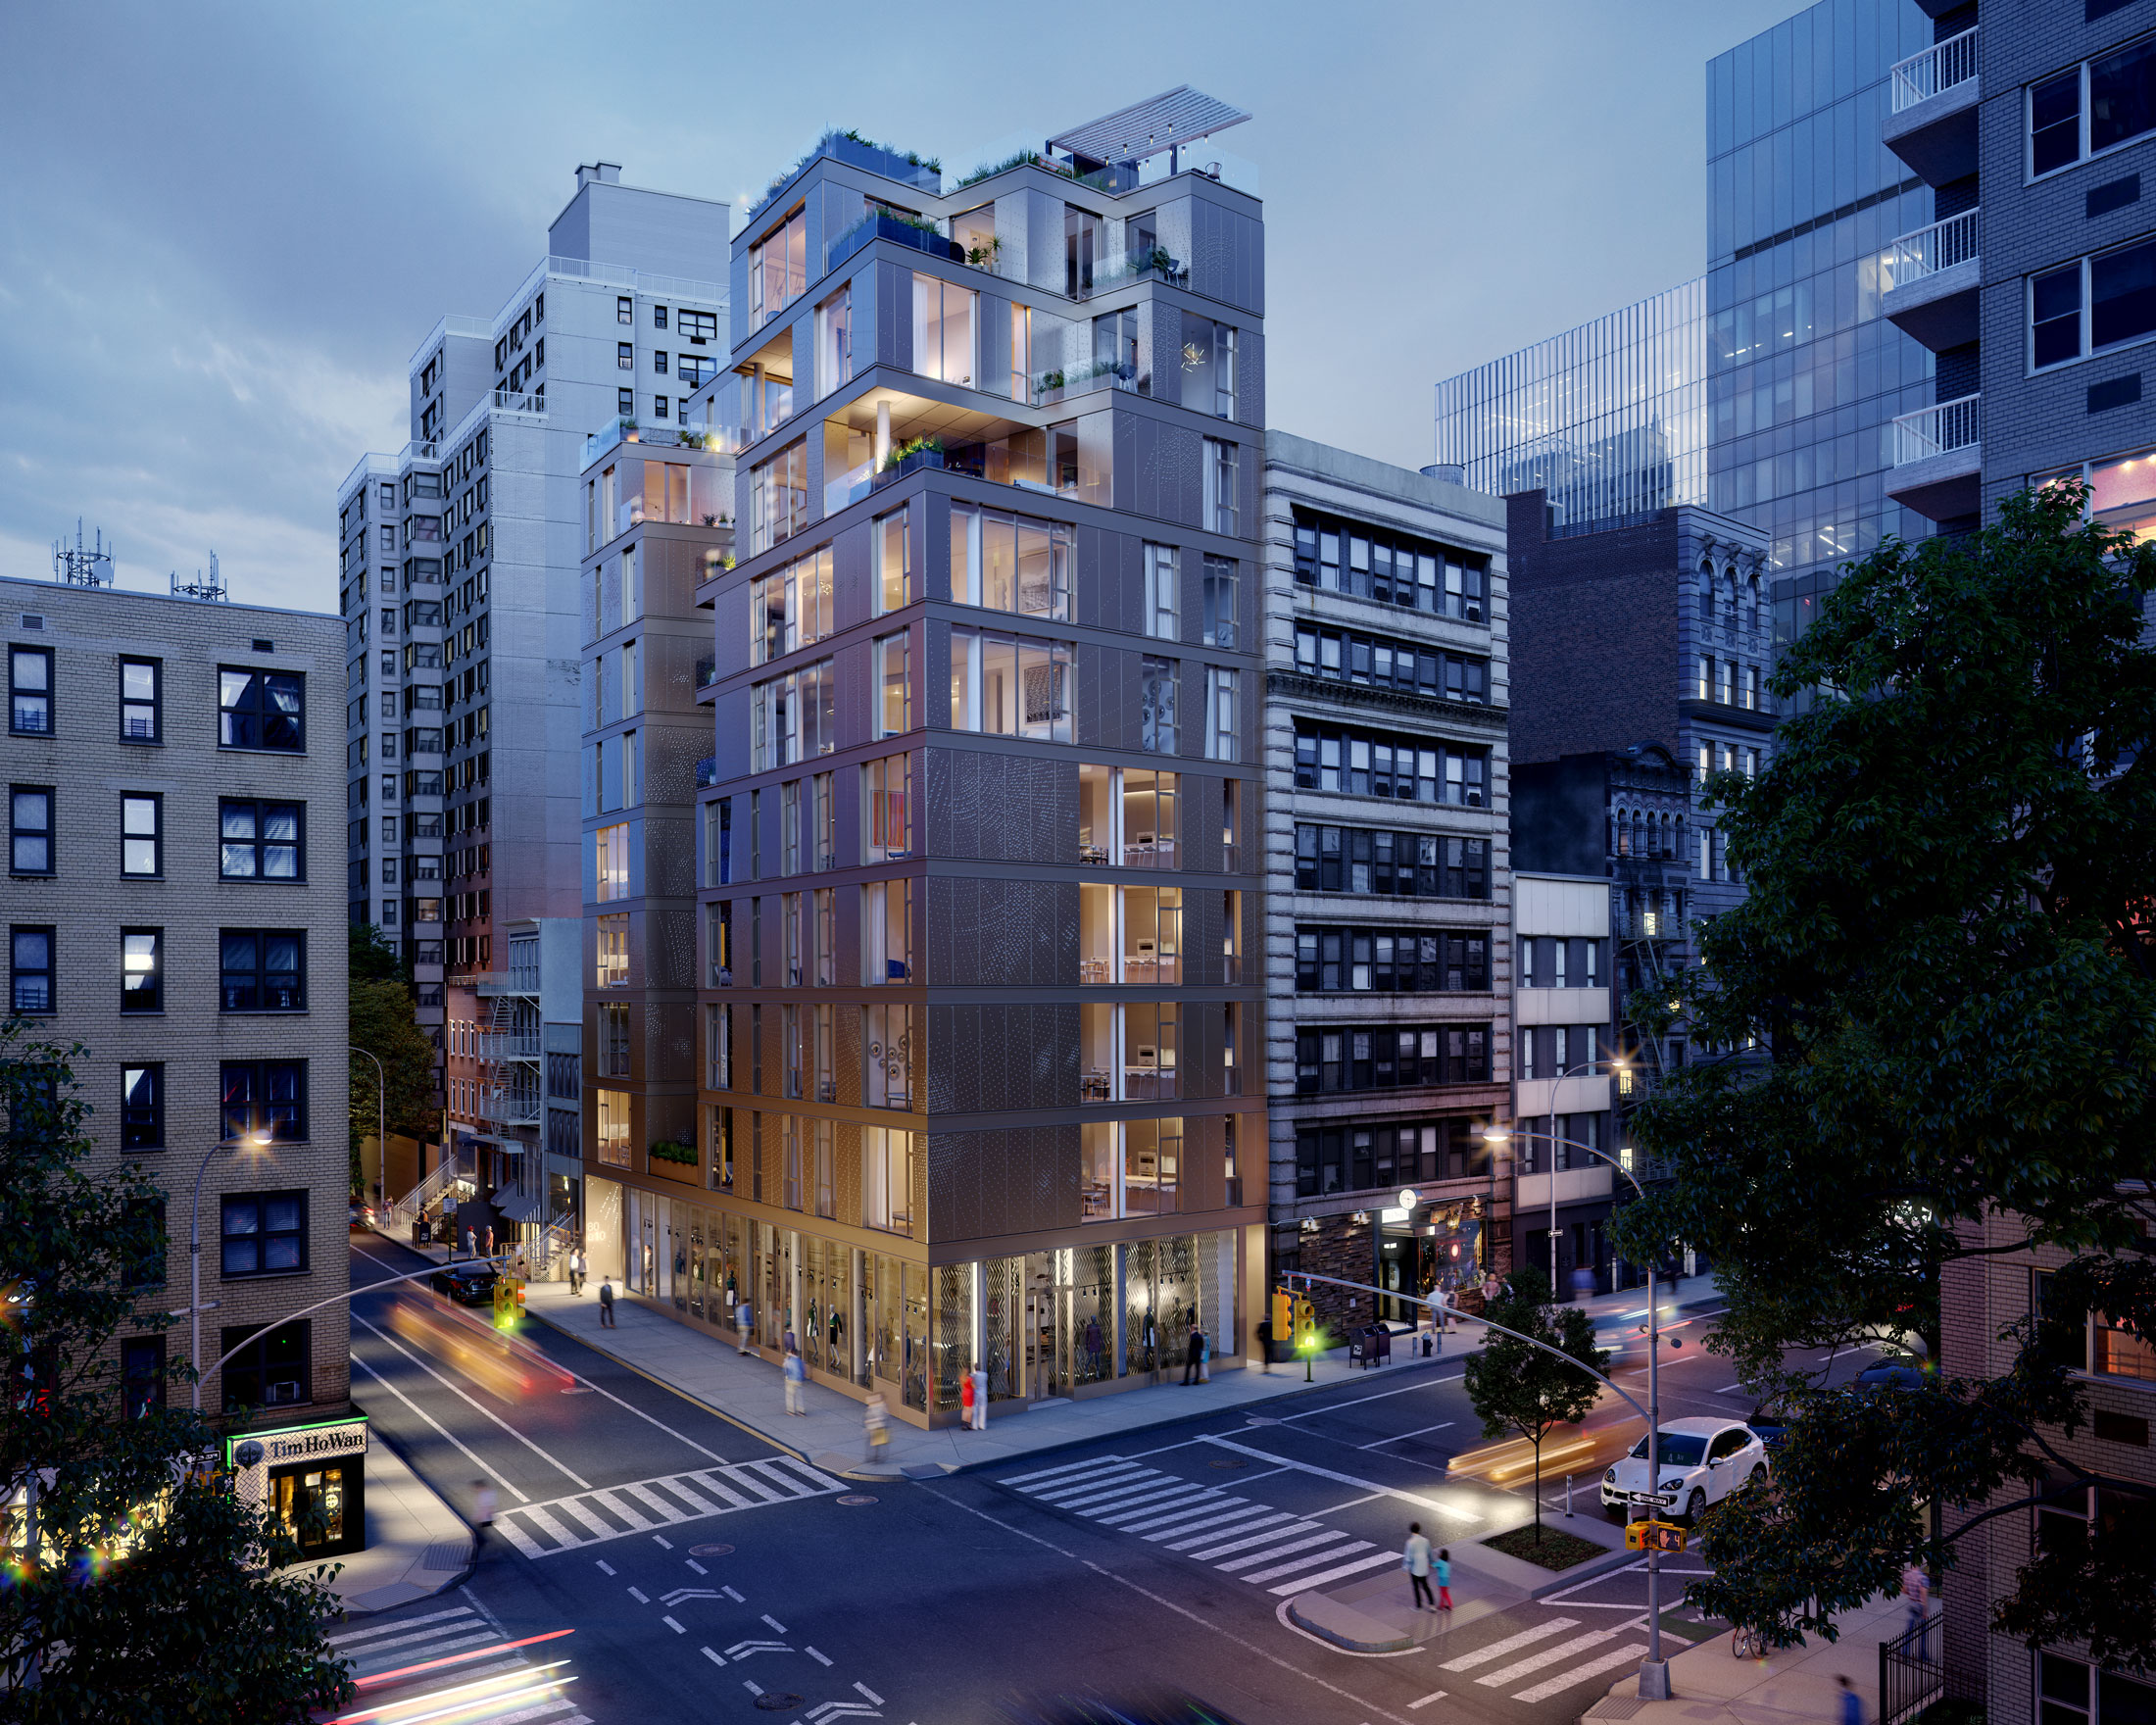 Architectural Rendering of the exterior of the 80 East 10th Street project located in Greenwich Village in New York City